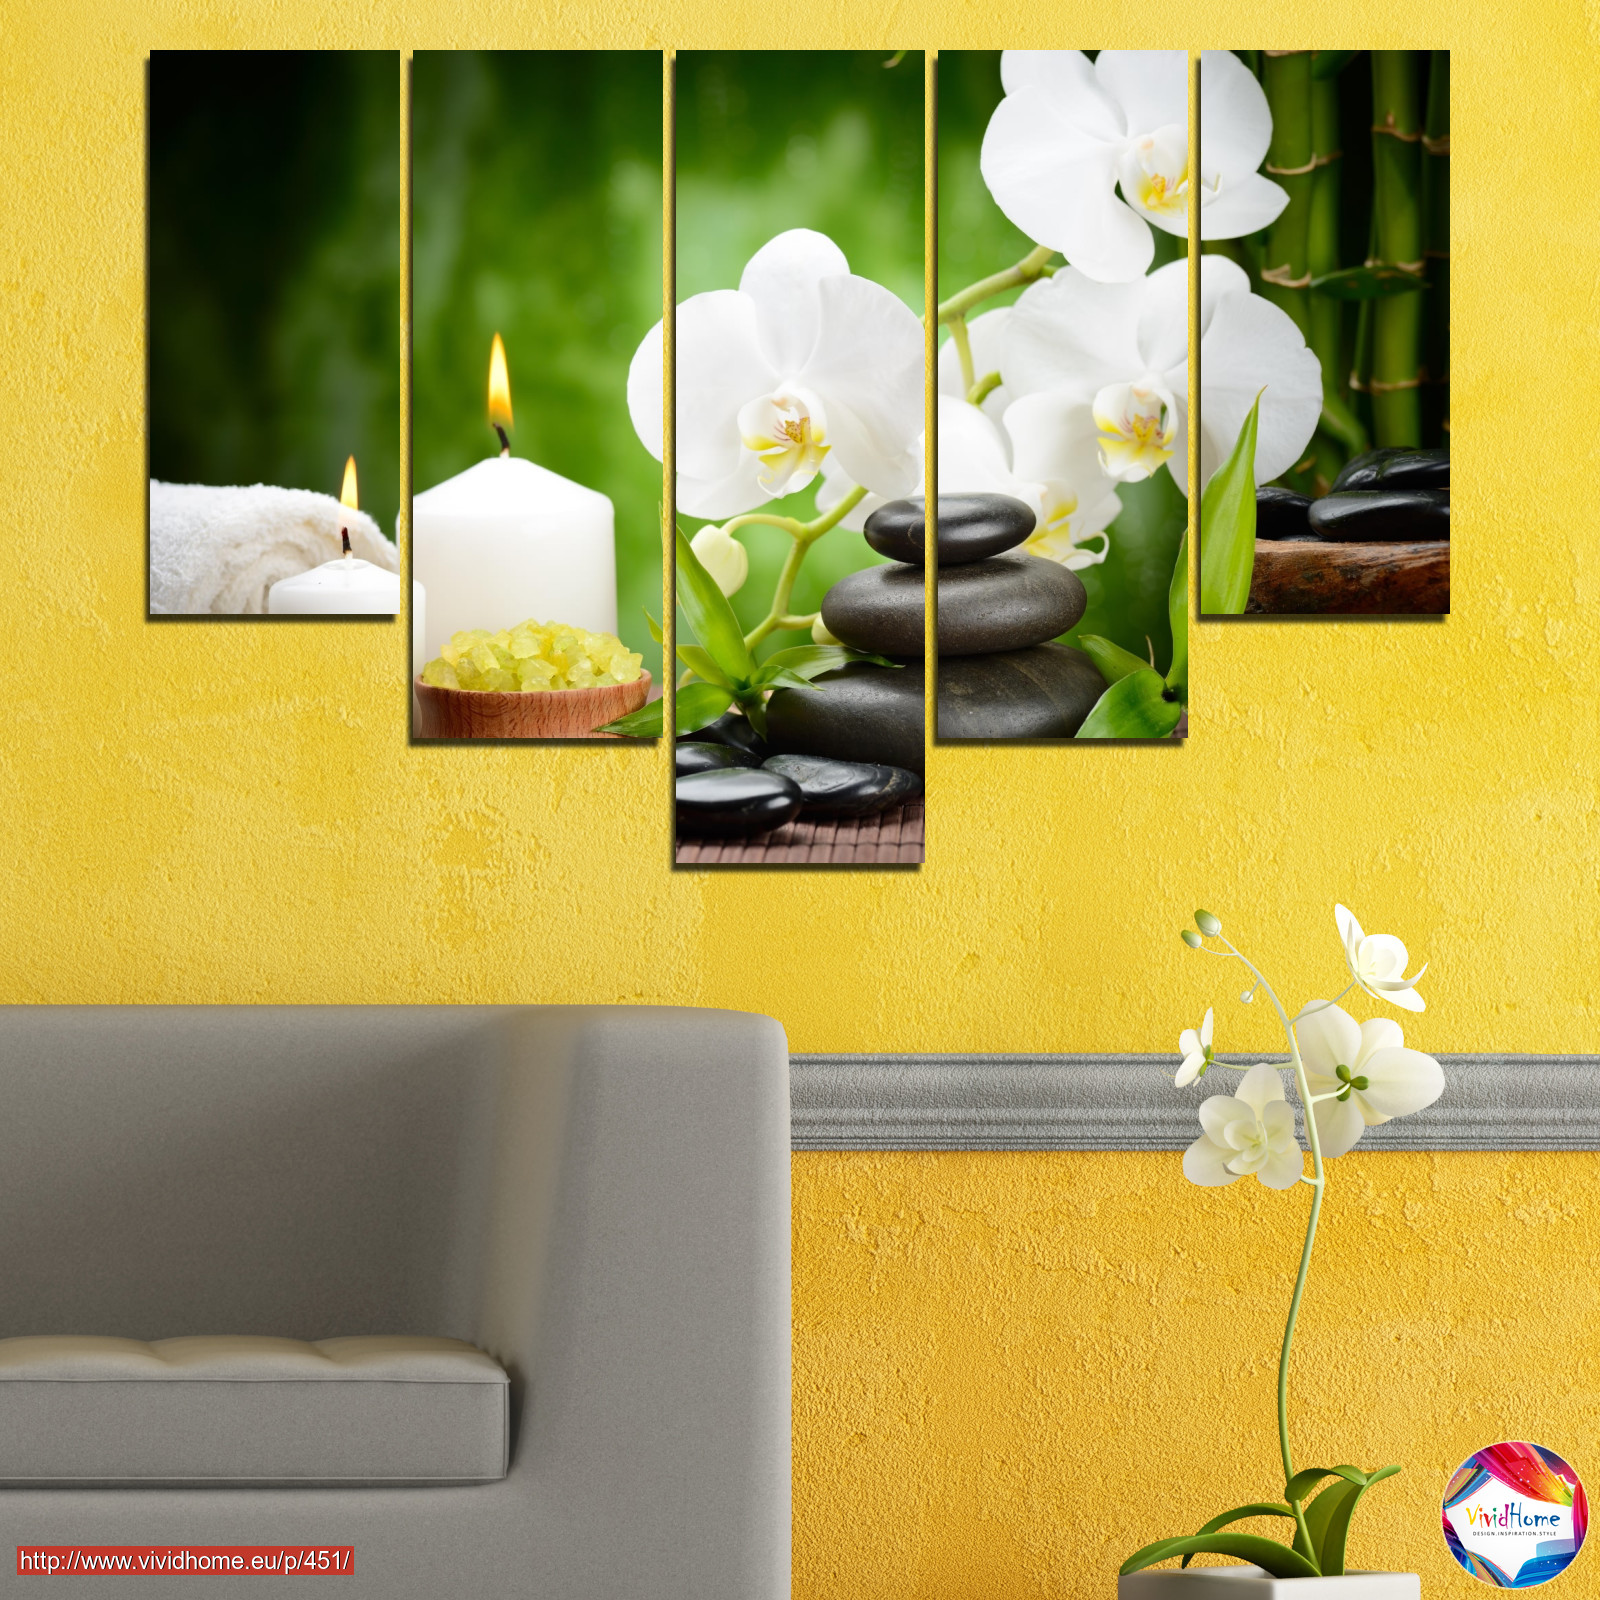 Flowers, Orchid, Feng shui, Stones, Zen, Spa, Candle №0451